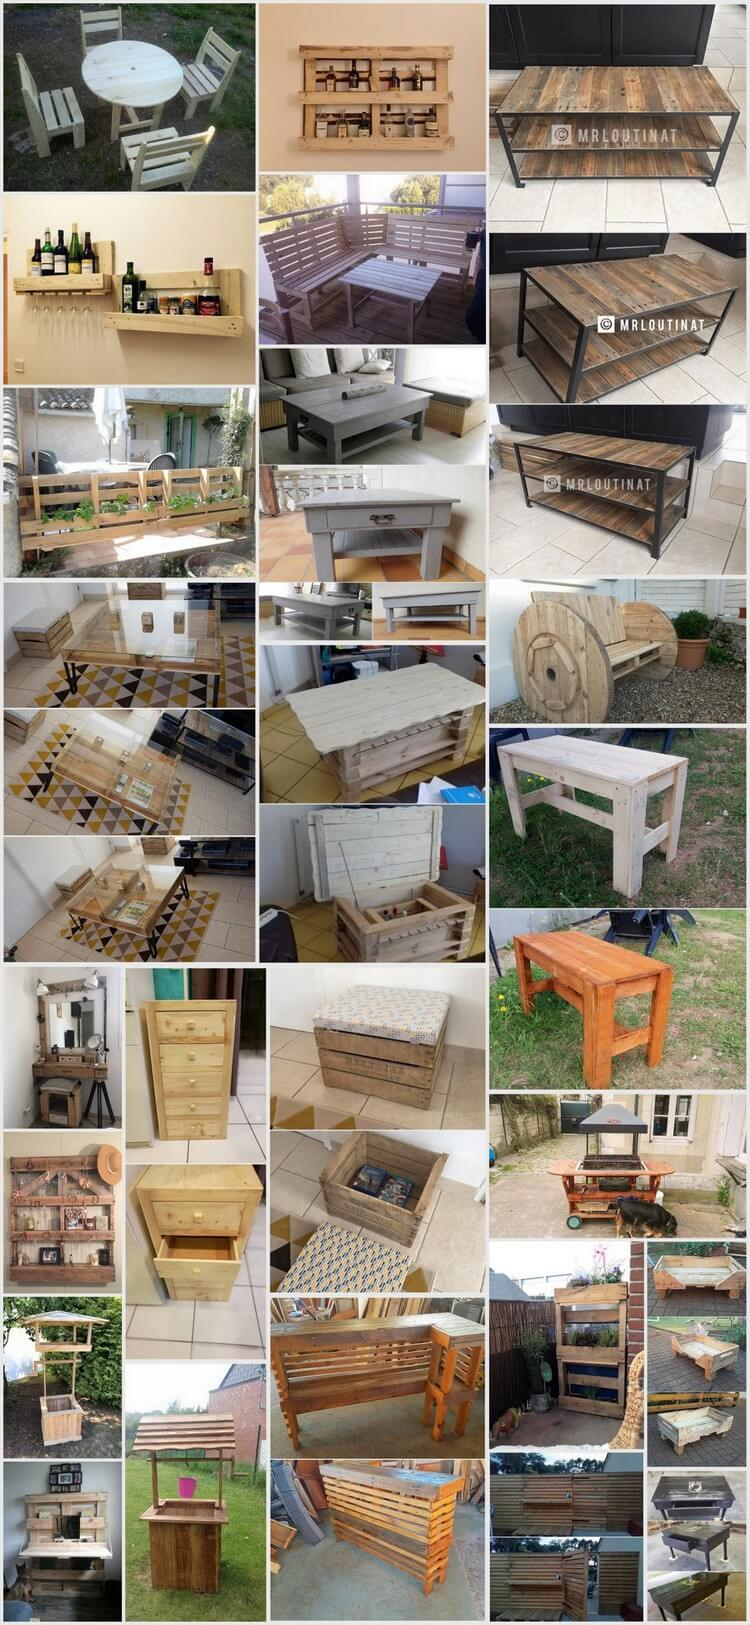 Tryout These Awesome Wooden Pallet Recycling Ideas